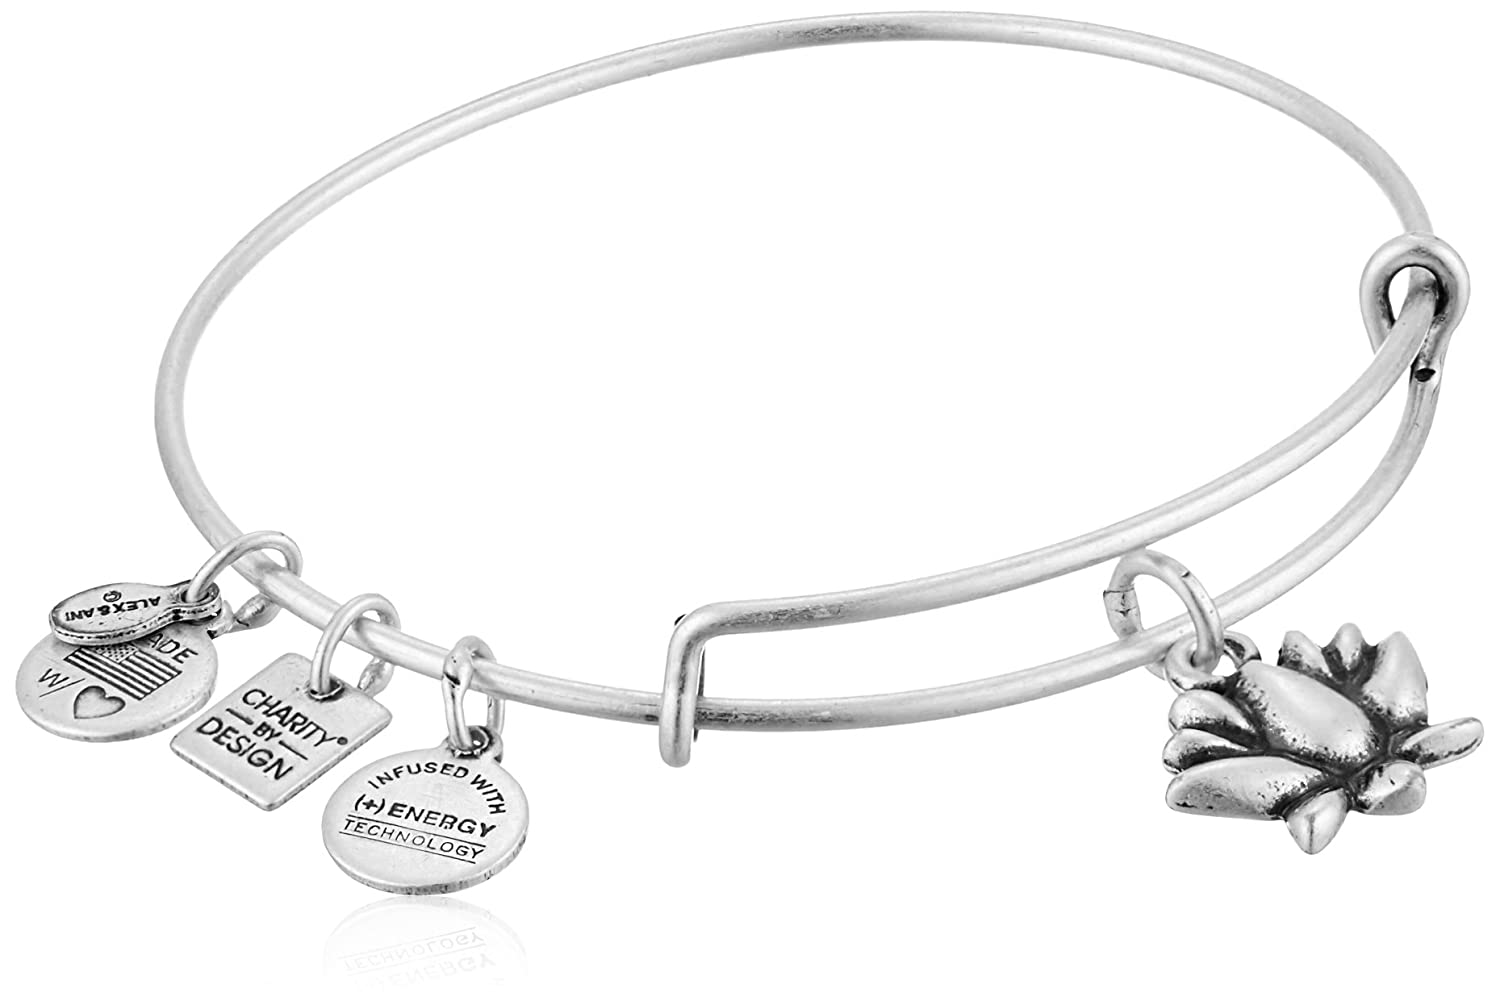 Alex and Ani Charity by Design Lotus Blossom Bangle Bracelet CBD12LBRS